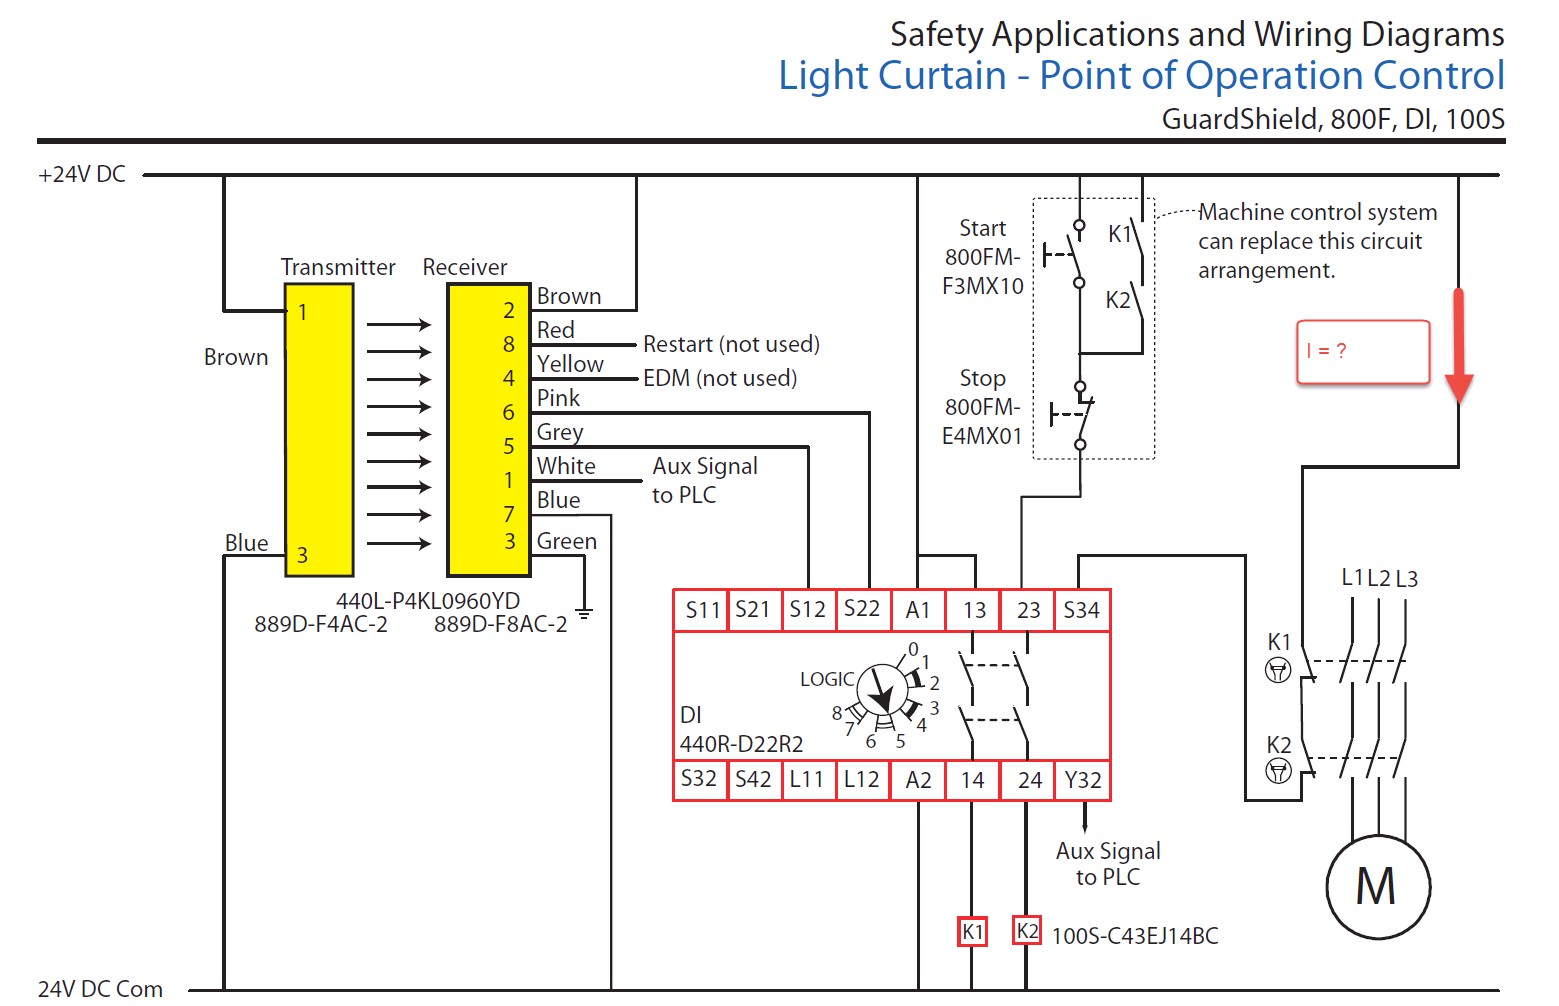 Allen Bradley Safety Relay Wiring Diagram Unique Image Ab Plc Gsr Di What Is The Current Going To Contact S34